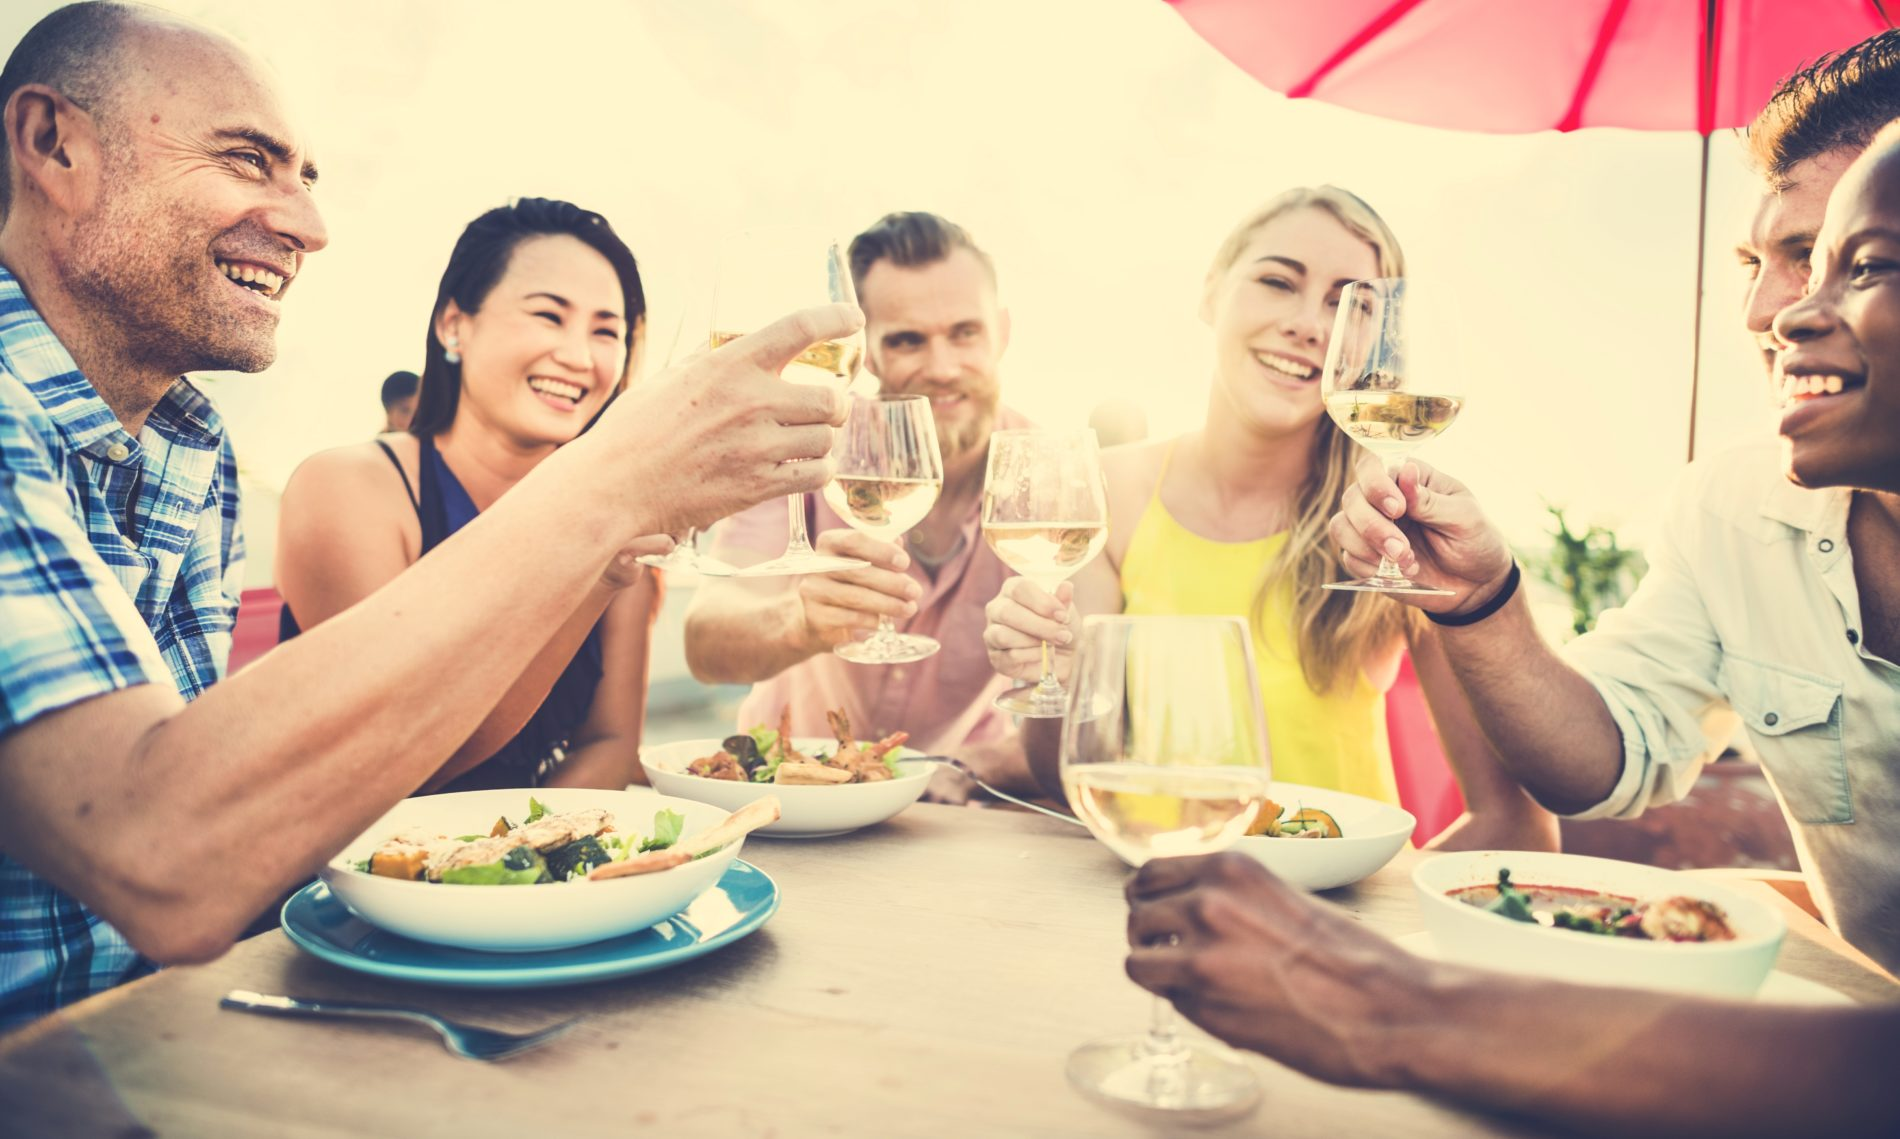 Group of happy friends dining outside on the beach